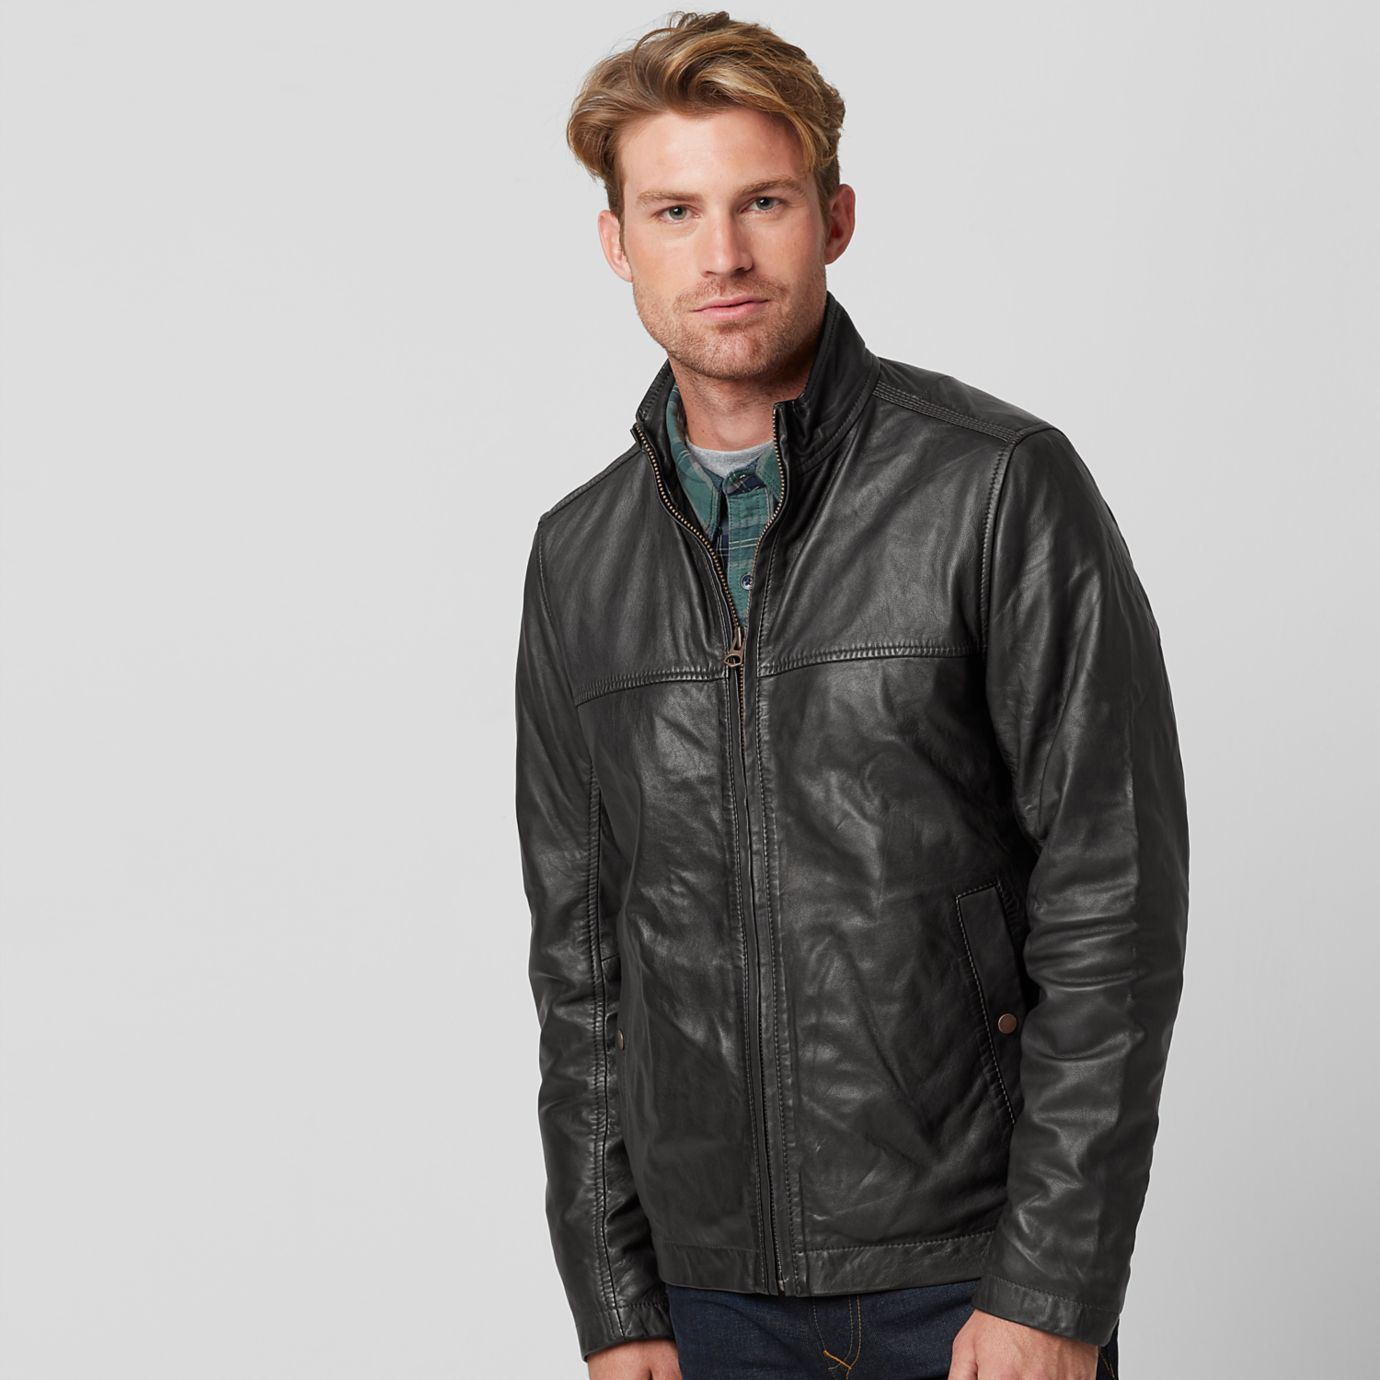 0cadc95bf57 The Iconic Leather Jacket: Timberland leather jackets and the leather jacket  style icons who inspired them